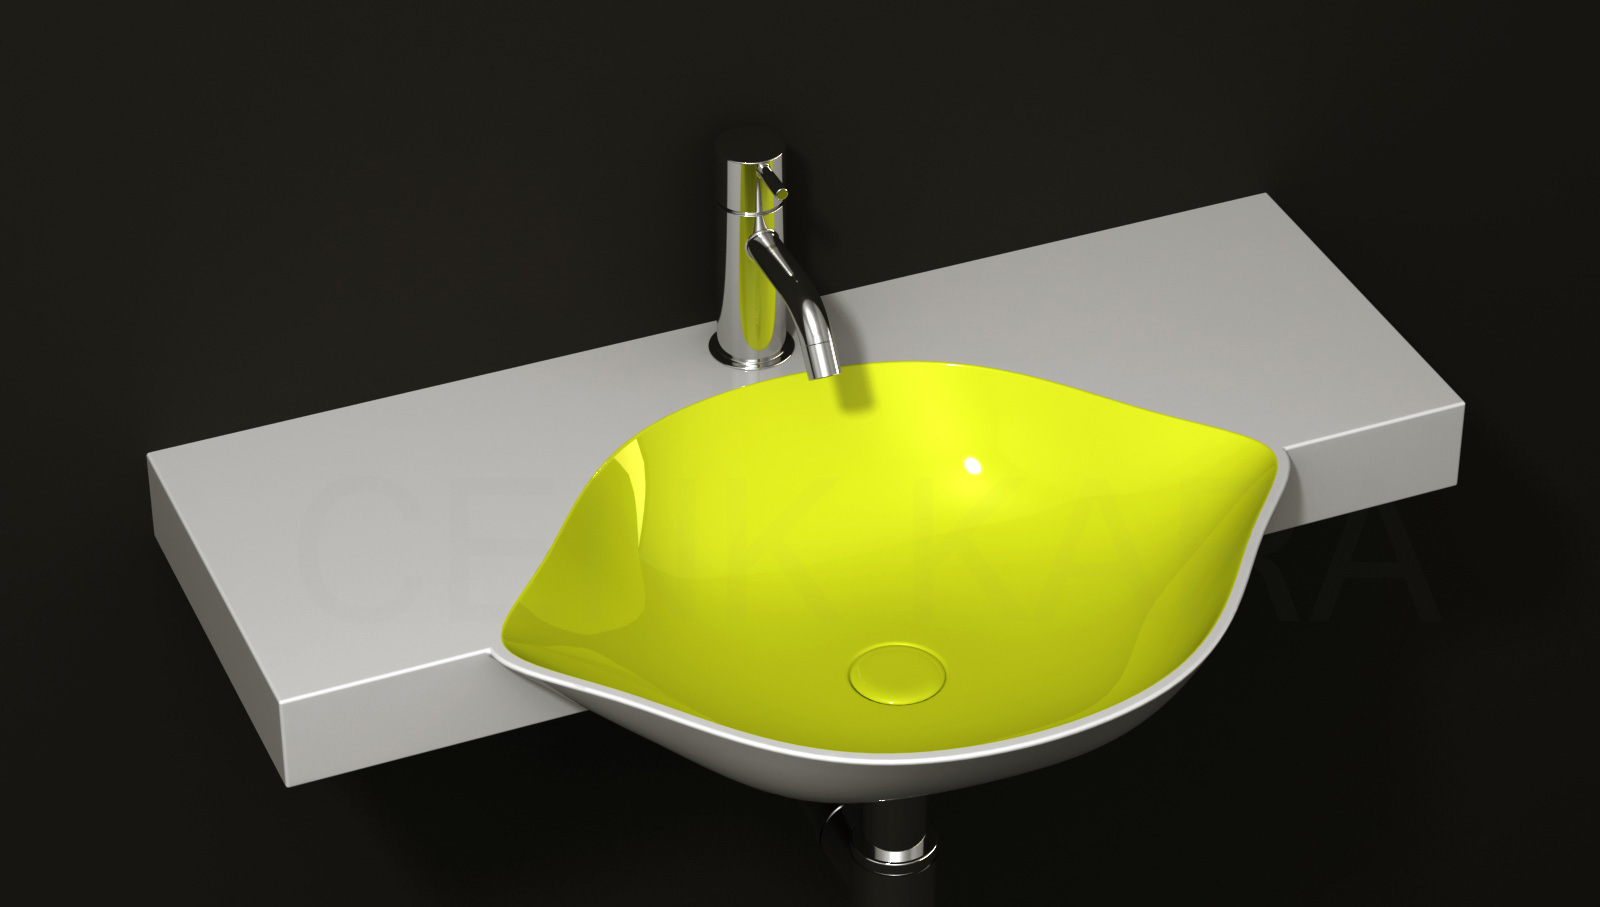 Cool Fruit-Inspired Bathroom Sinks – Lemon by Cenk Kara